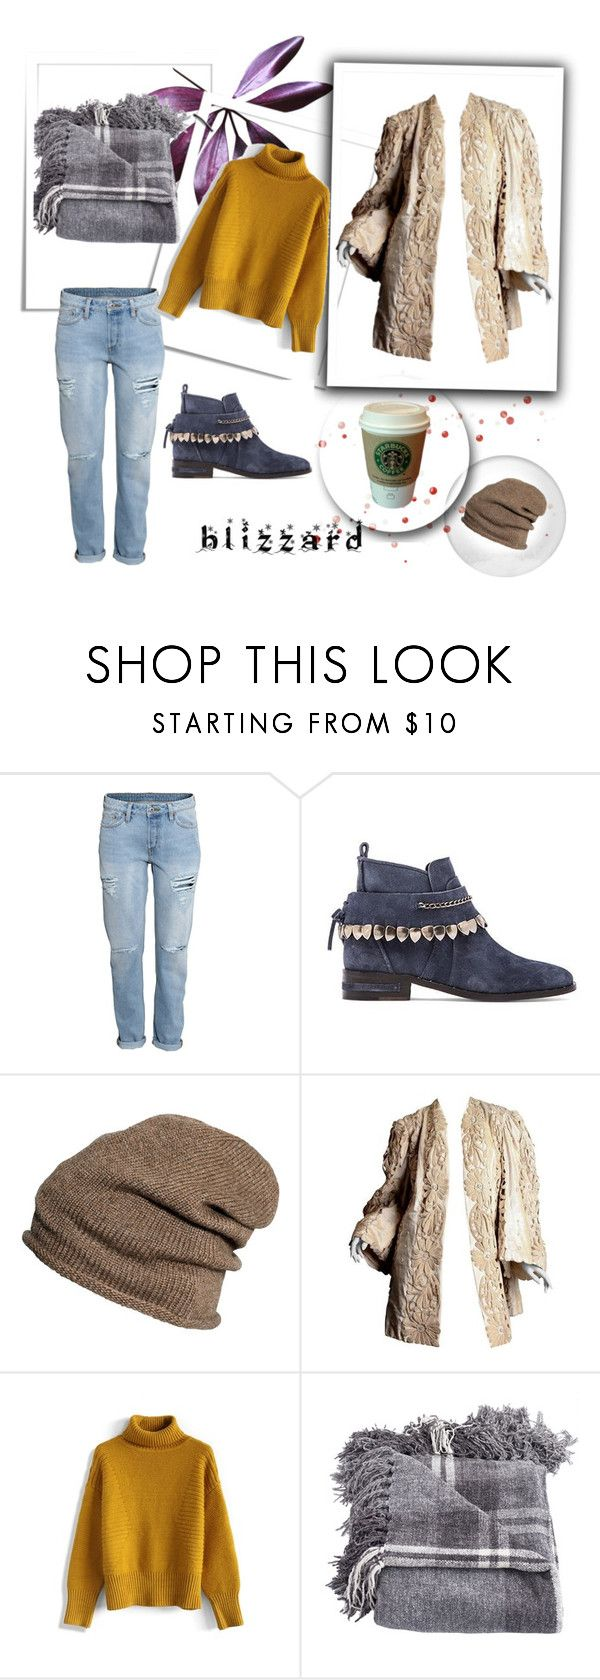 """""""hot coffee"""" by redapplecigarettes ❤ liked on Polyvore featuring H&M, Freda Salvador, MANGO, Chicwish and blizzard"""